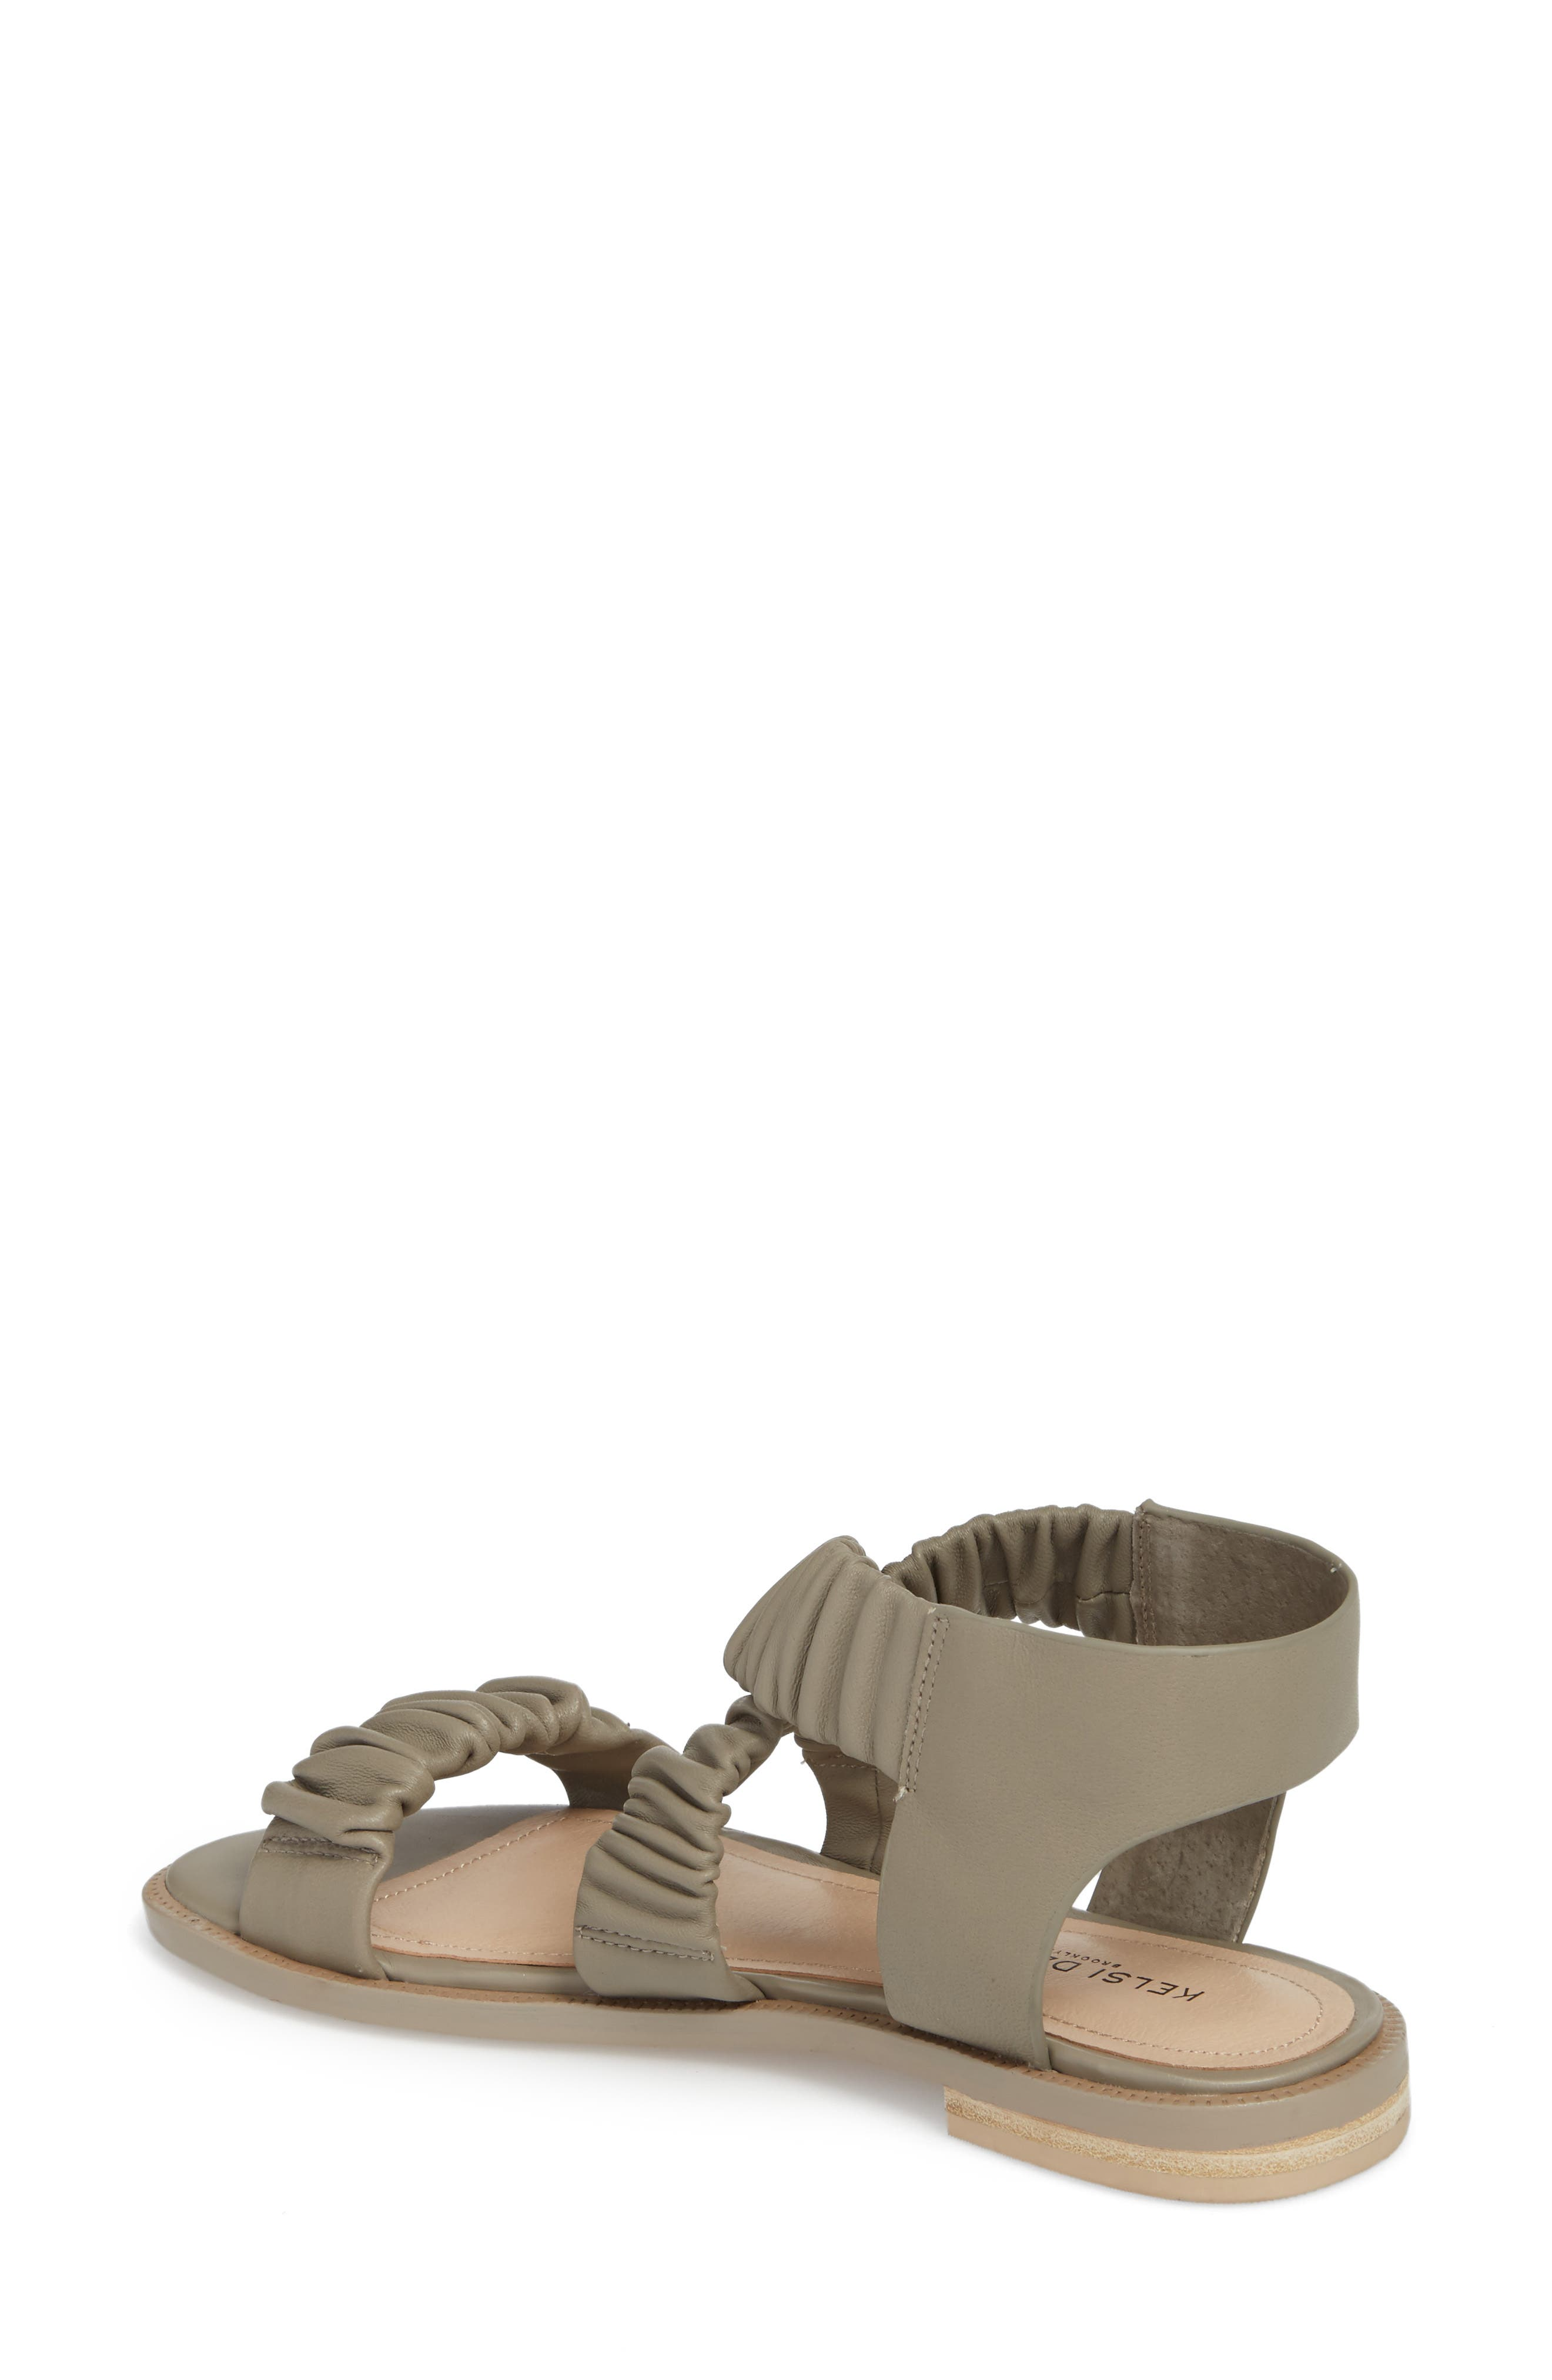 Ryder Pleated Flat Sandal,                             Alternate thumbnail 5, color,